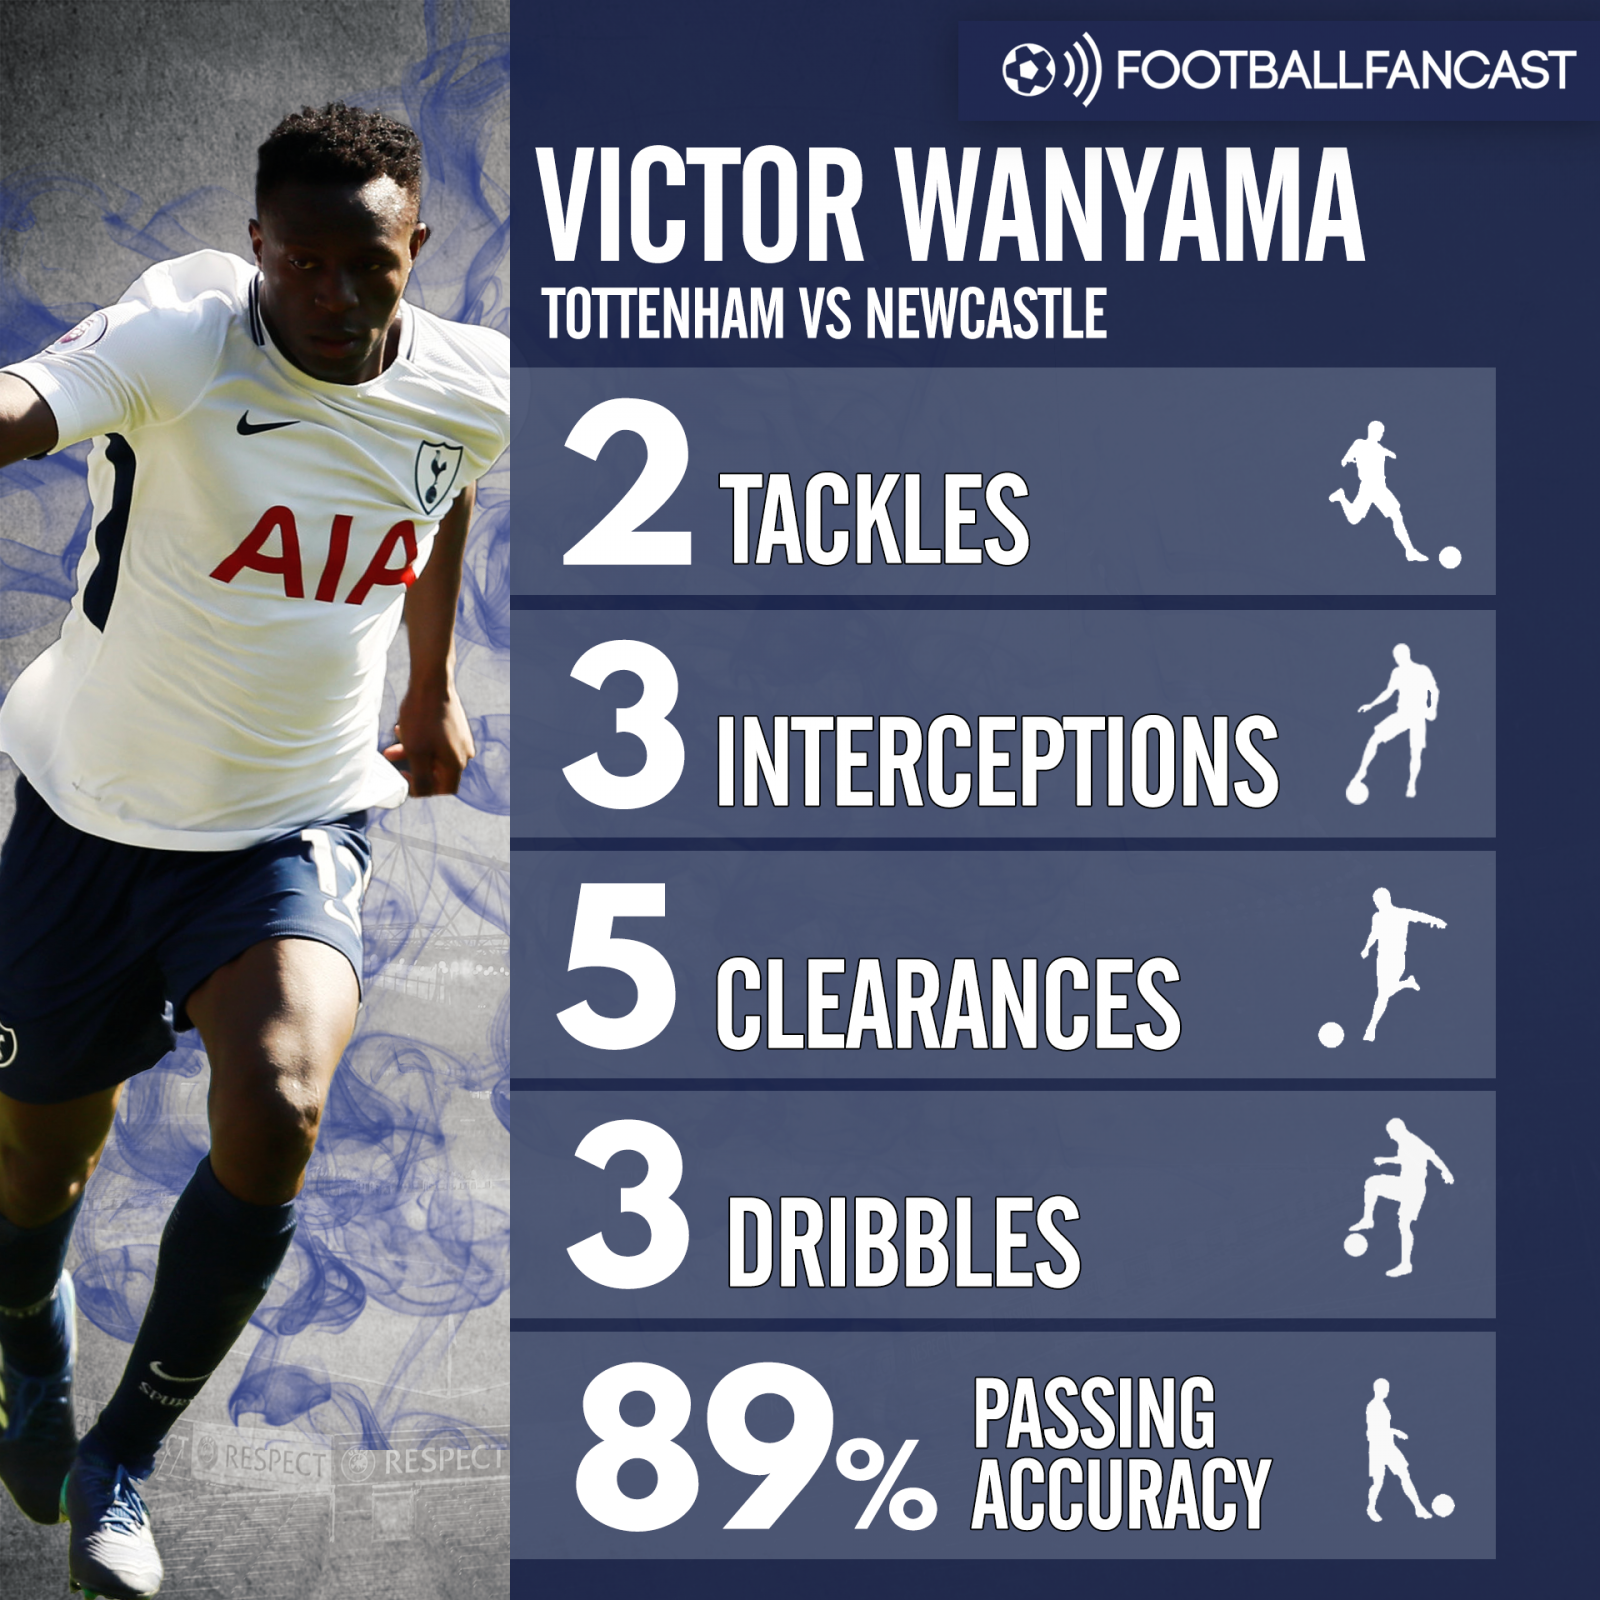 Victor Wanyama's stats from Tottenham's win over Newcastle